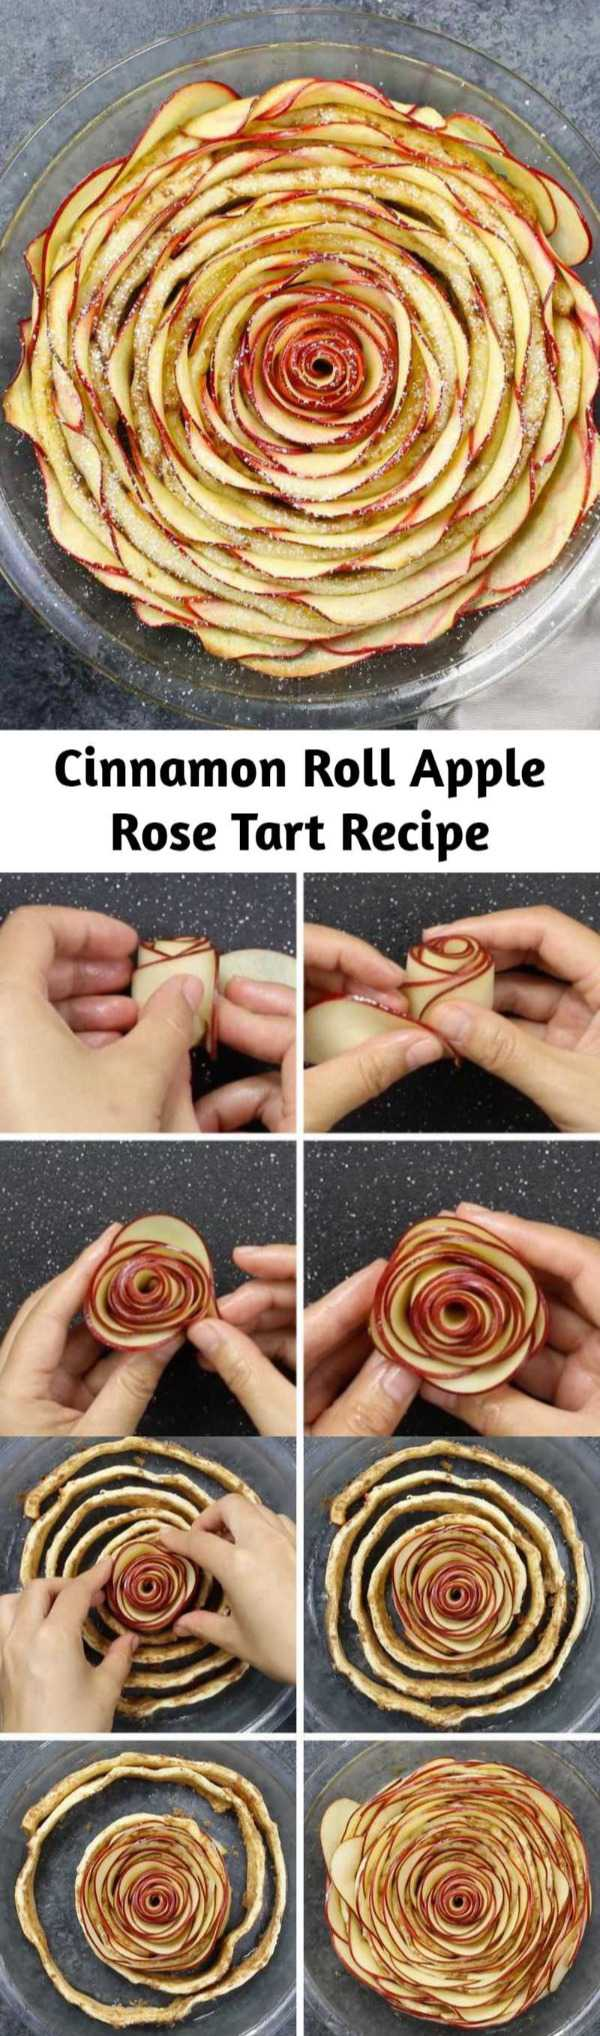 Cinnamon Roll Apple Rose Tart Recipe - Wow your guests with this beautiful Cinnamon Roll Apple Rose Tart. It's so easy to make and perfect for a party! Made with fresh apples. All you need is only 5 simple ingredients: cinnamon roll dough, red apples, lemon juice, brown sugar and butter. So beautiful! Quick and easy recipe.